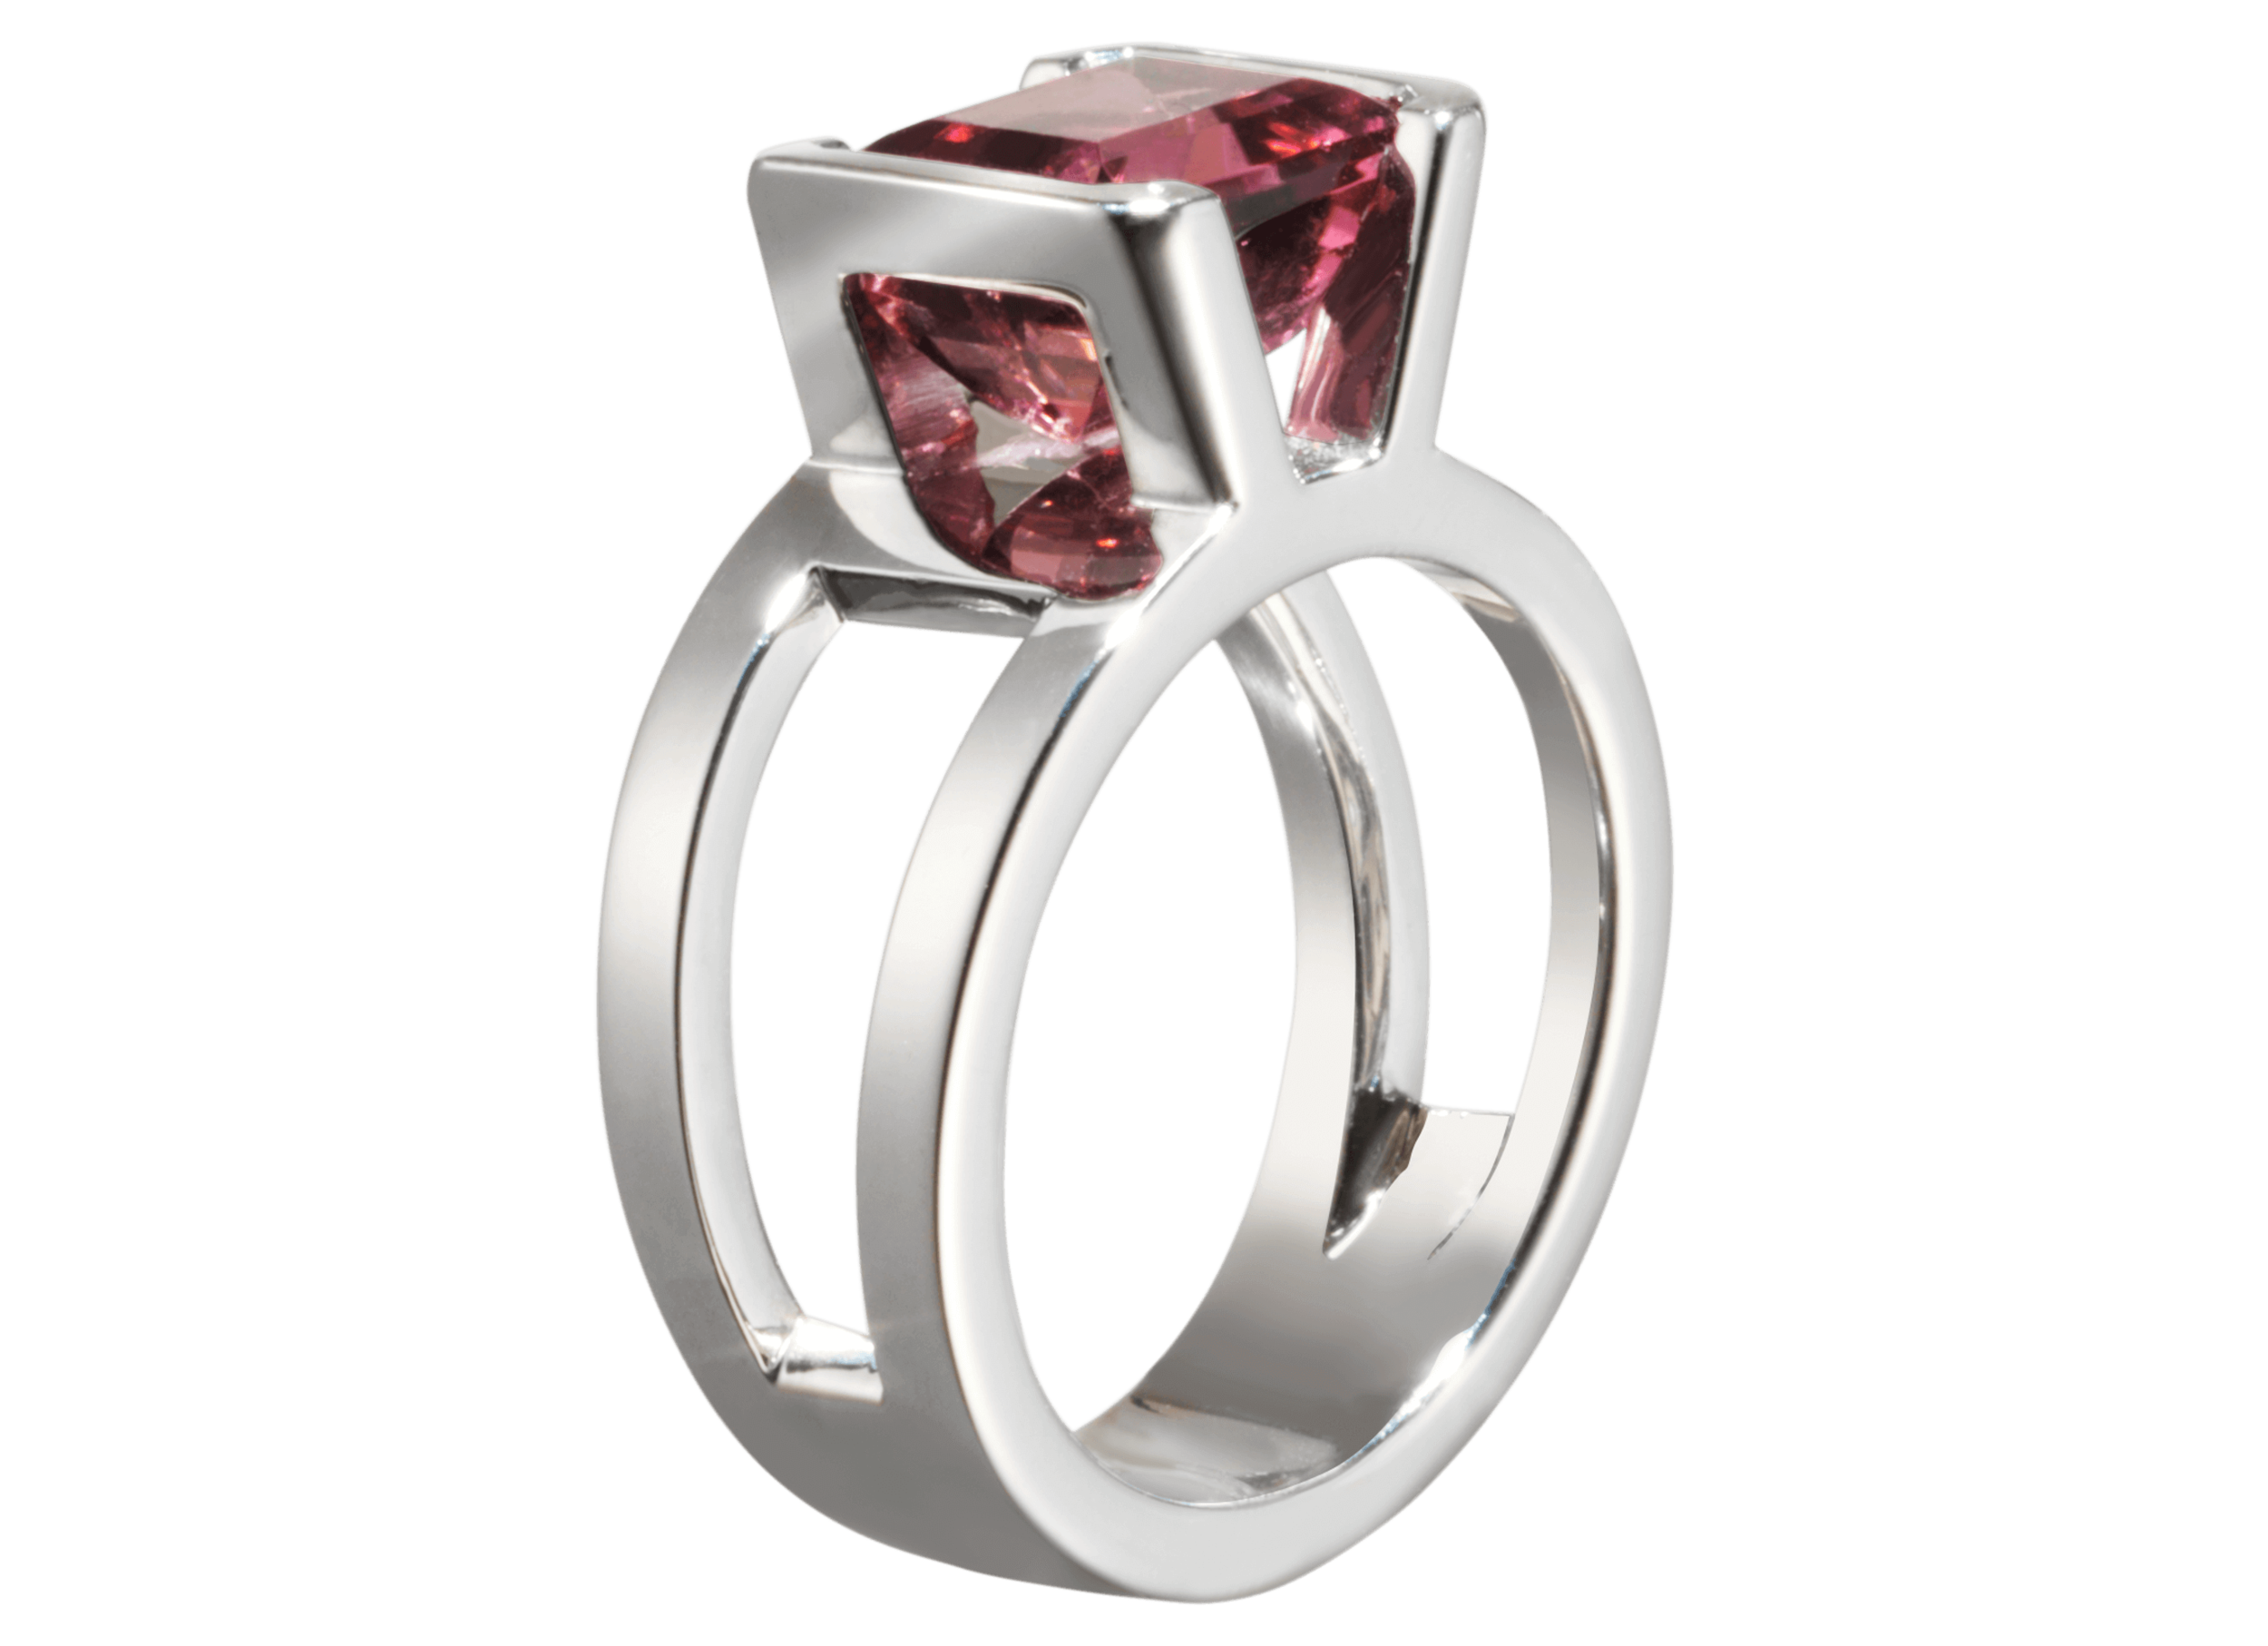 Bague Floria or blanc tourmaline rose RPC 3,11 carats.png